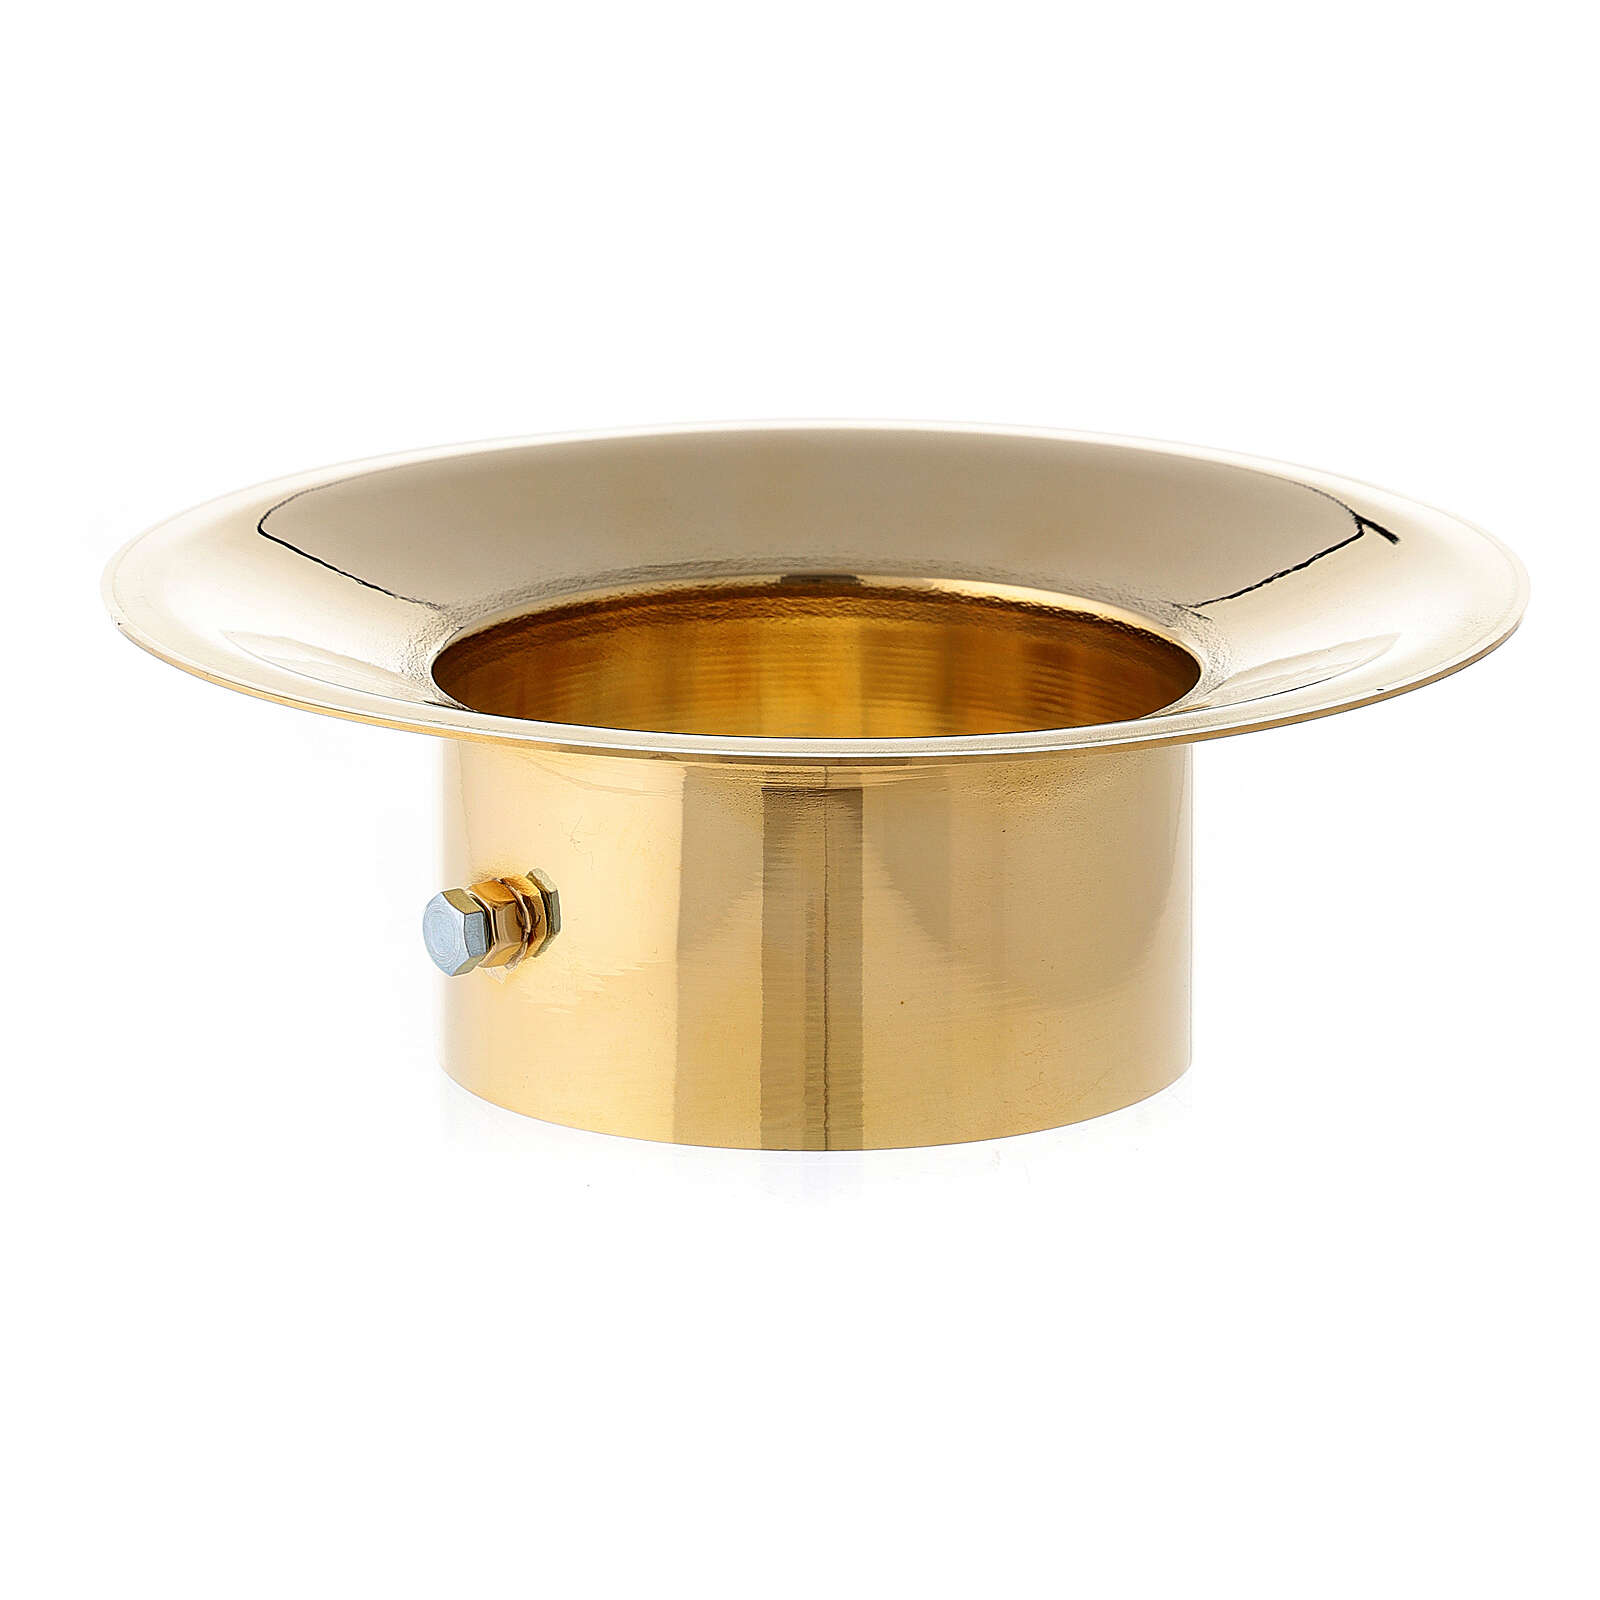 Wax collector in polished brass for Paschal candle 3 in diameter 3